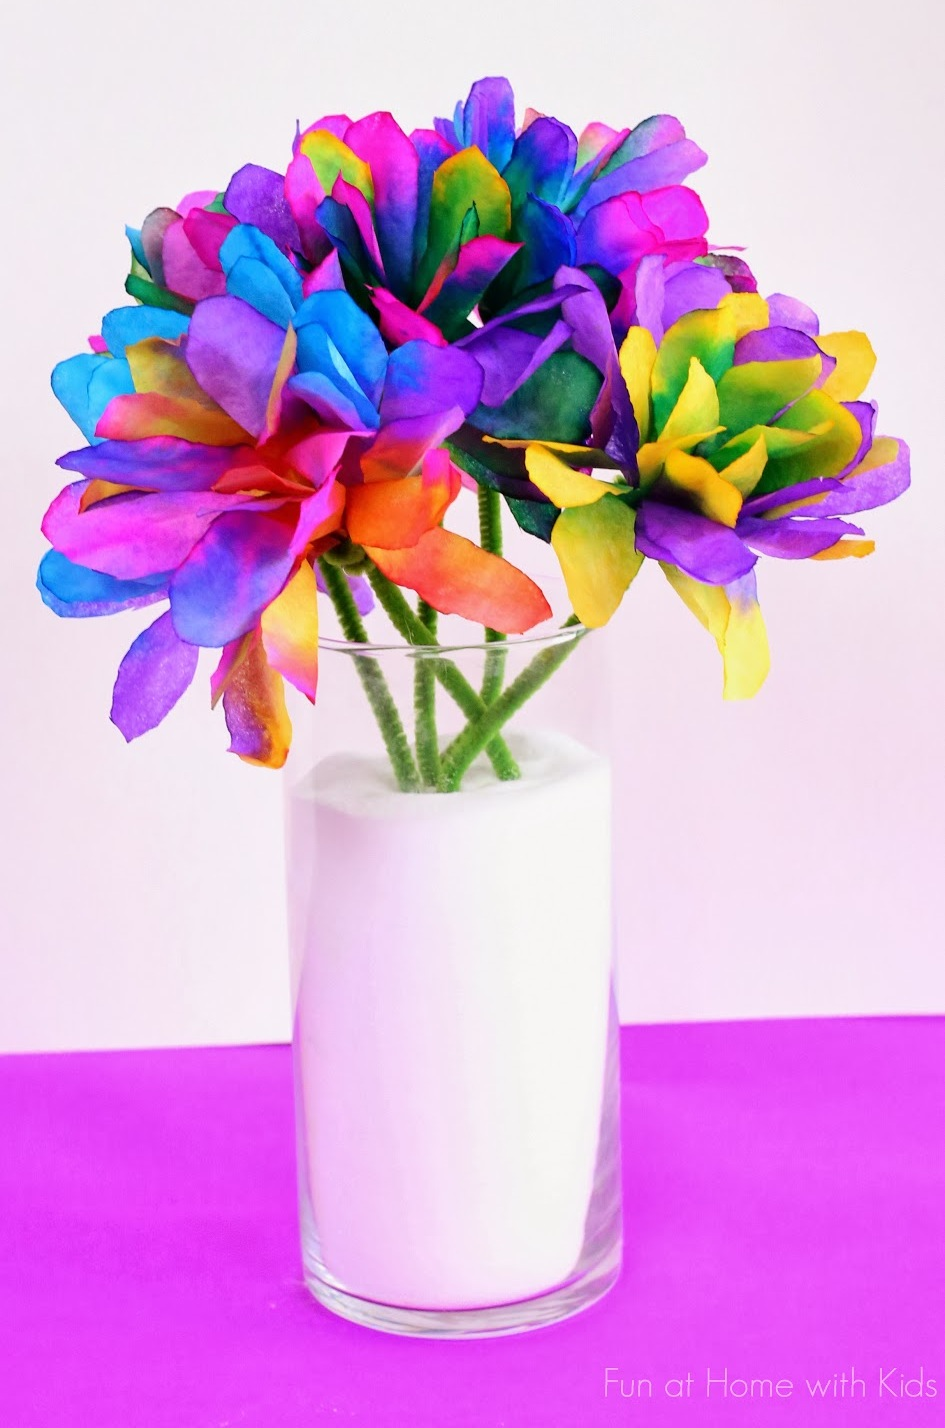 Make colorful flowers for Baha'i Ridvan